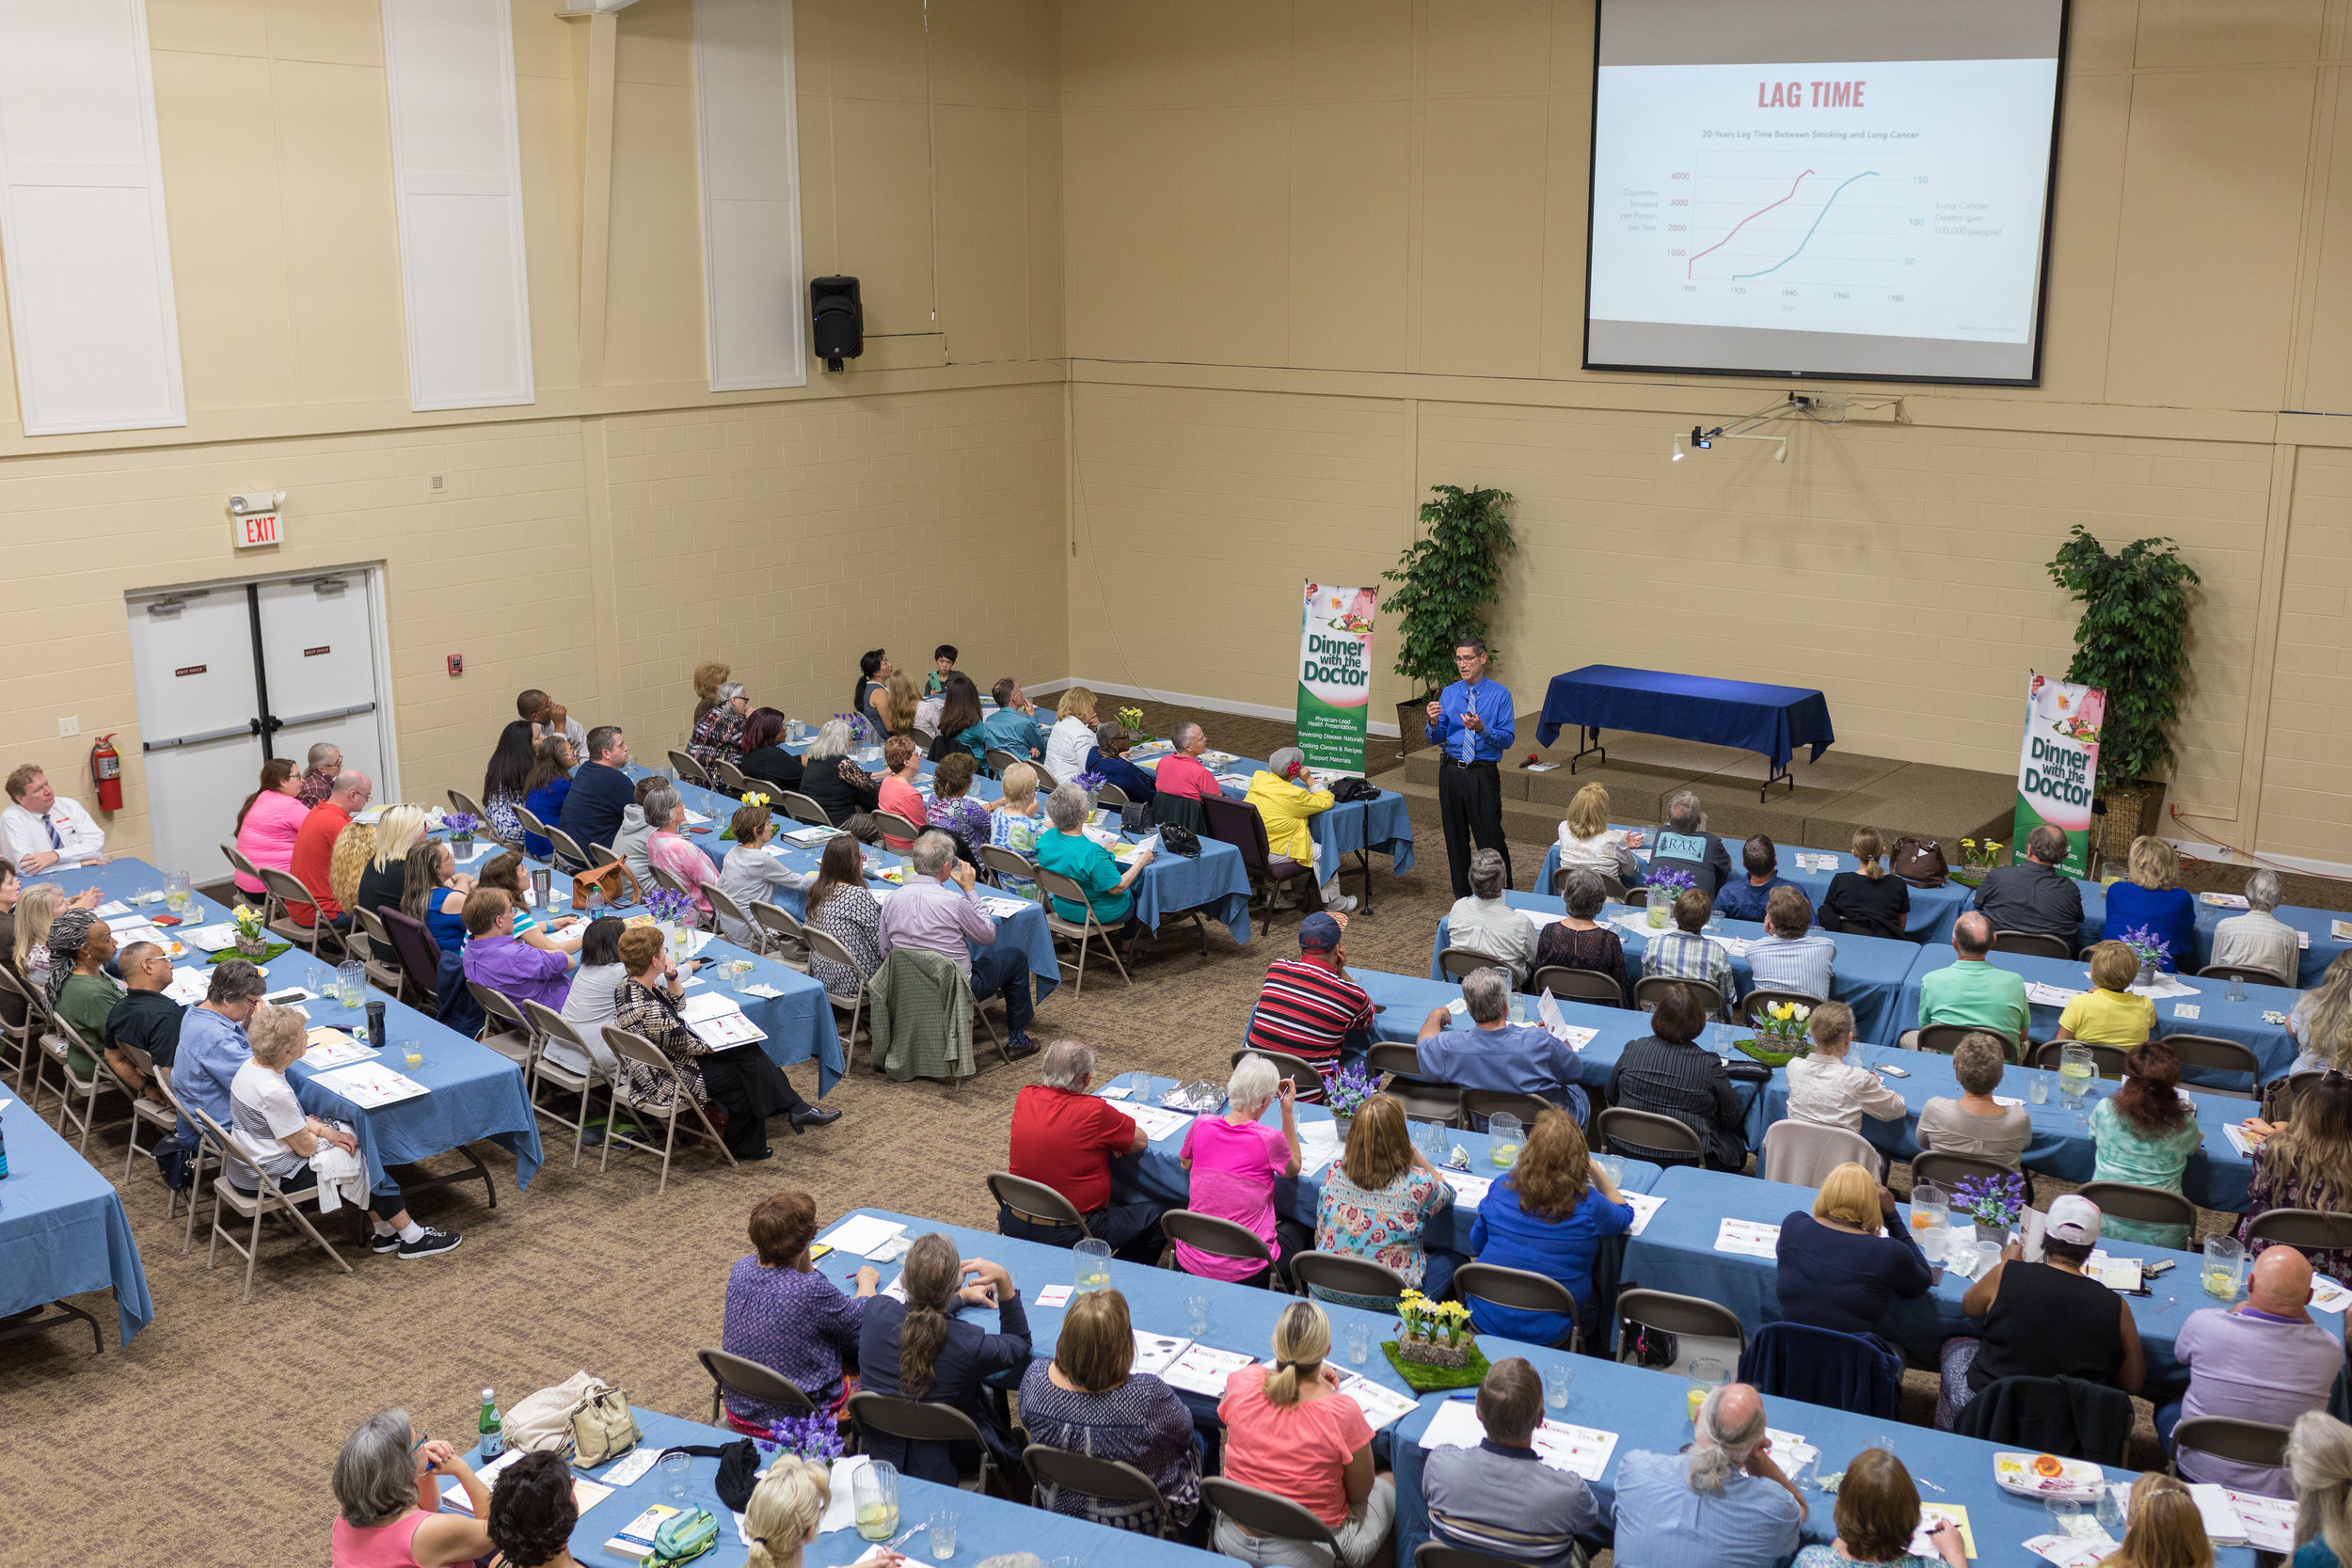 Michael C. Hollie '85 presents at a Dinner with the Doctor program at the East Ridge Seventh-day Adventist Church in Tennessee. The program promotes a whole-food, plant-based diet to treat, prevent, and reverse disease. (Photos contributed by Dr. Hollie.)